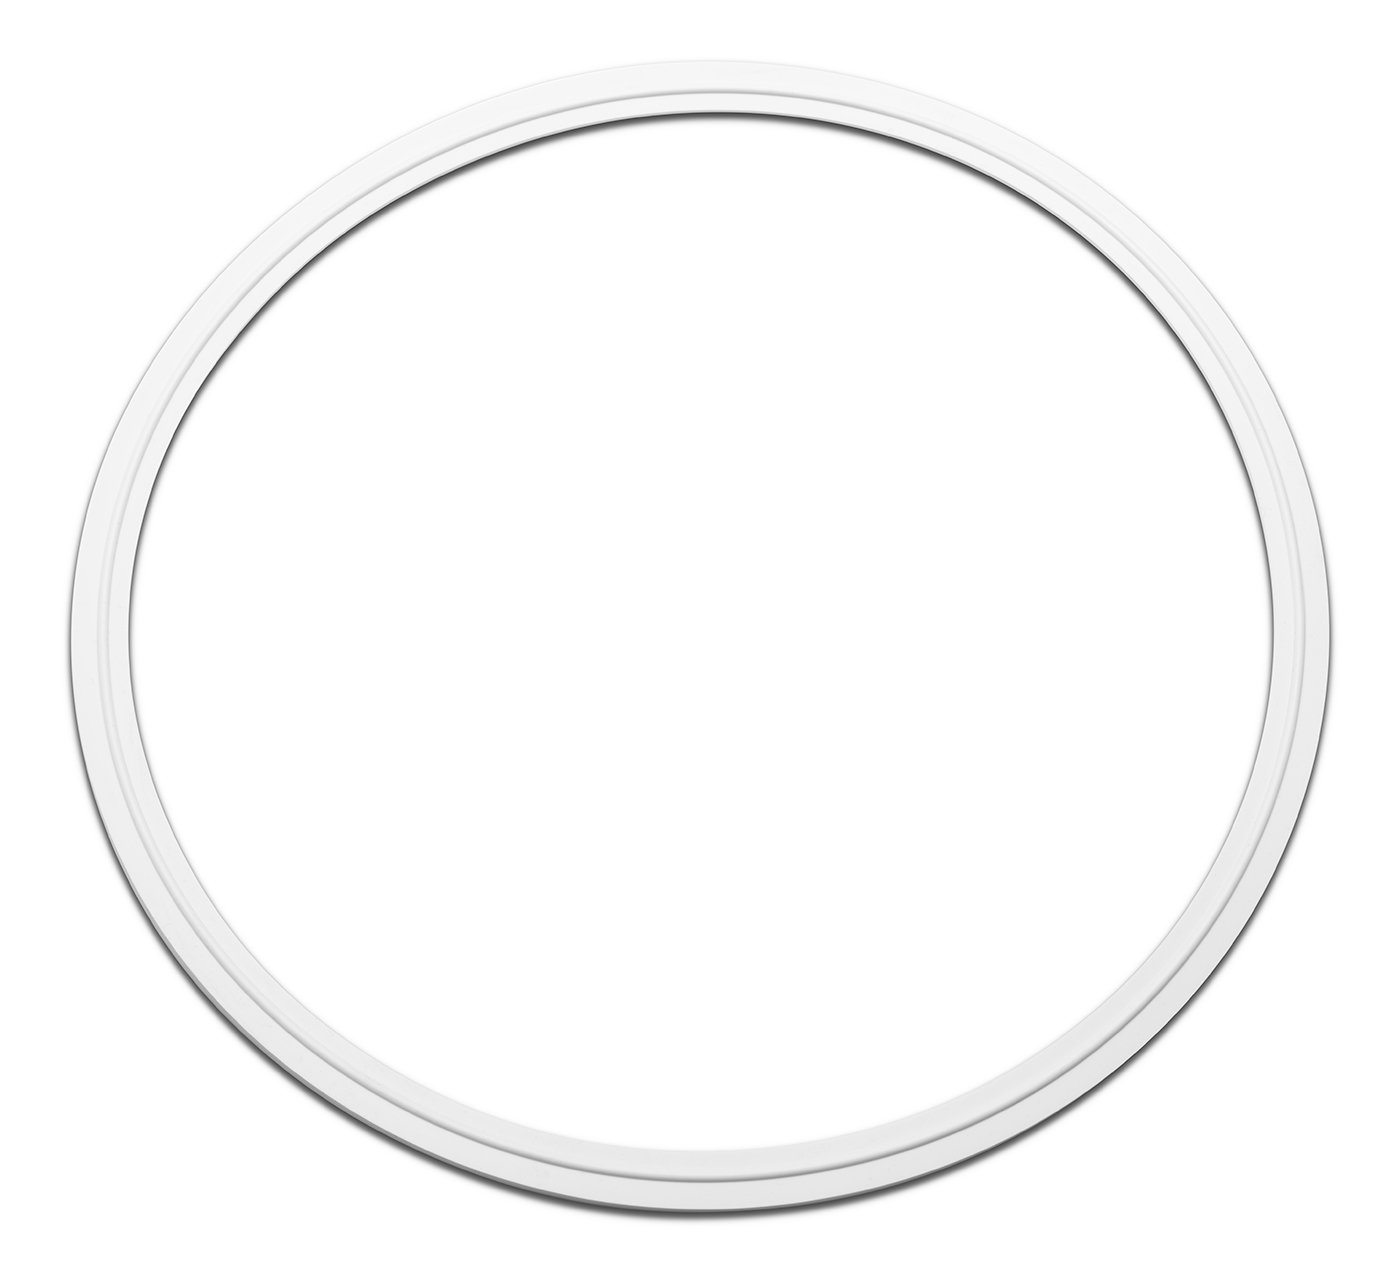 Silicone Tri-Clamp Gaskets Shop All Categories BVV 10-inch